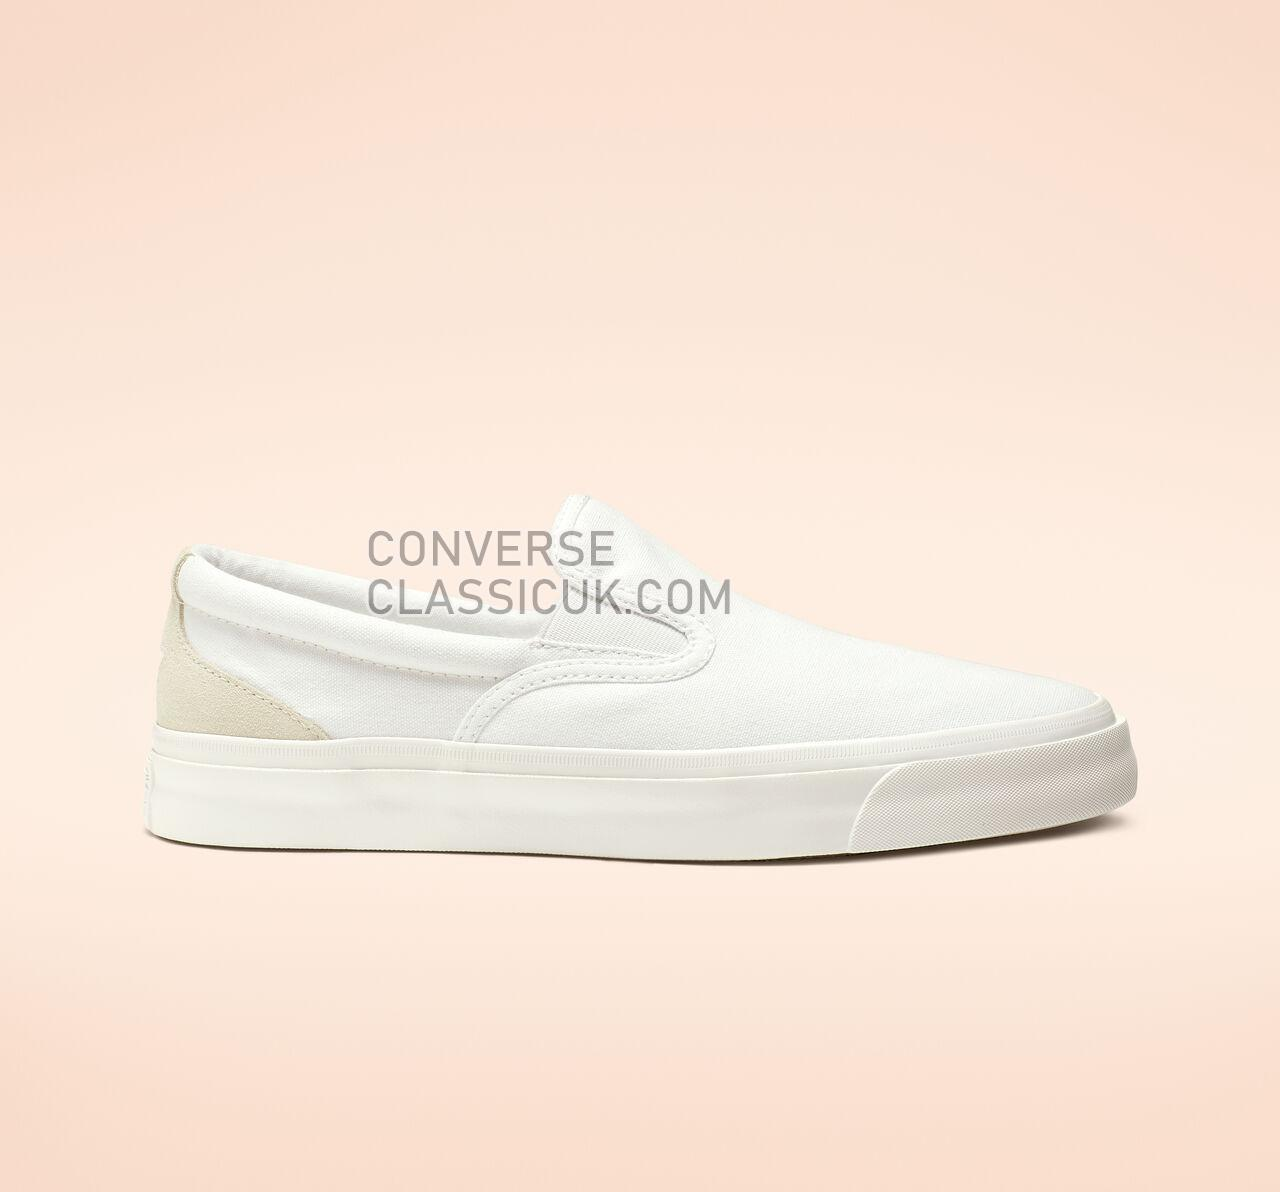 Converse One Star CC Slip Mens Womens Unisex 164395C White/White/White Shoes